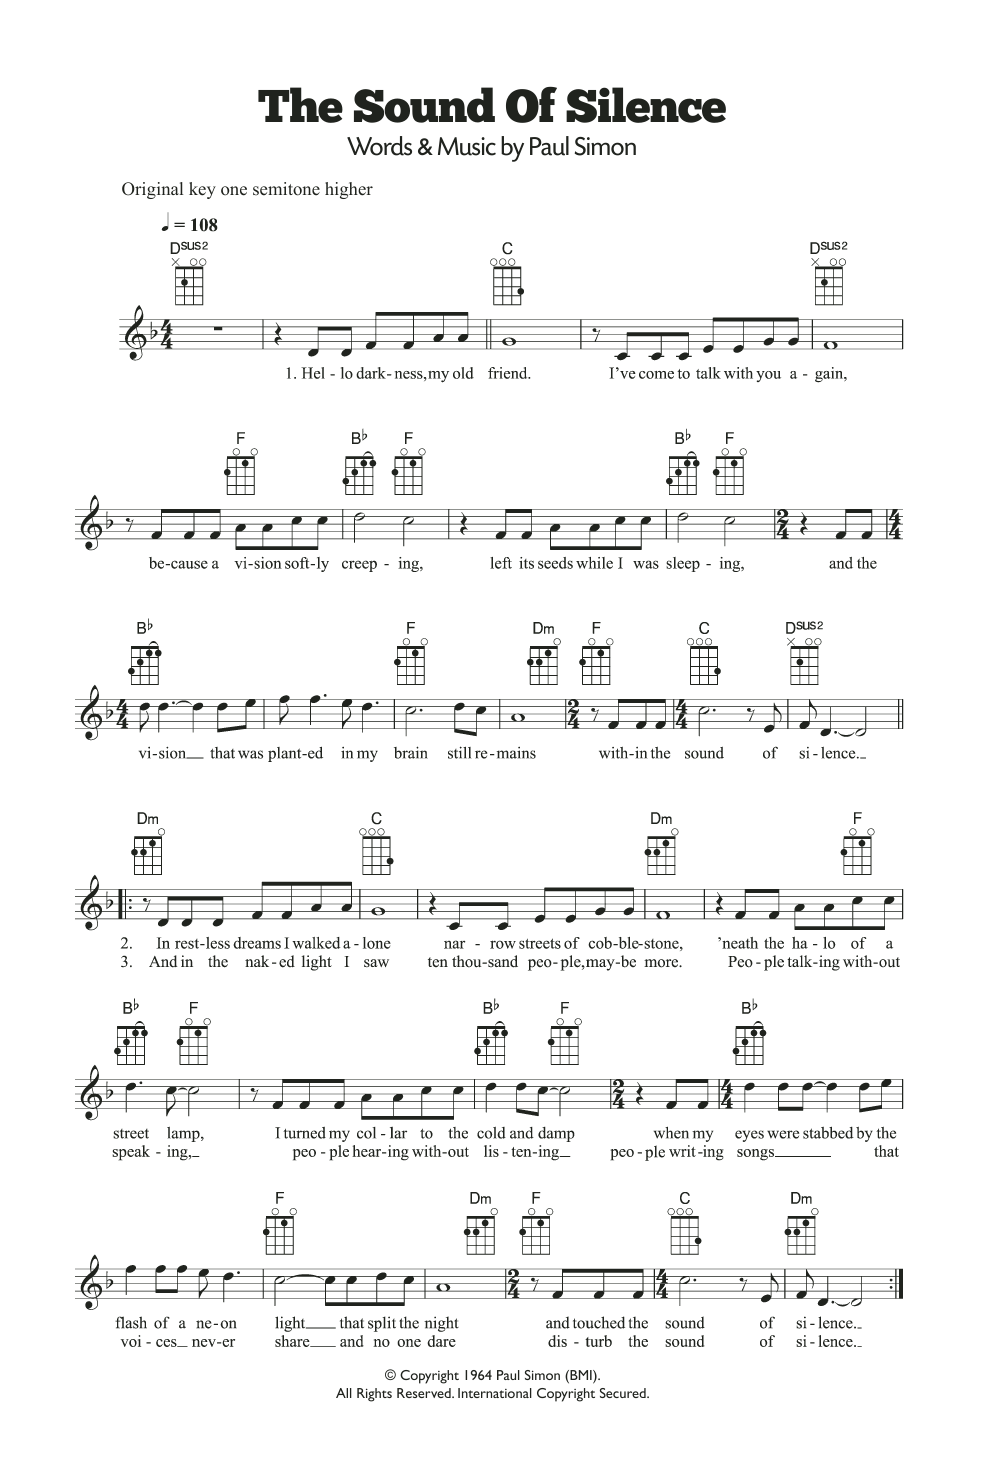 The Sound Of Silence Sheet Music